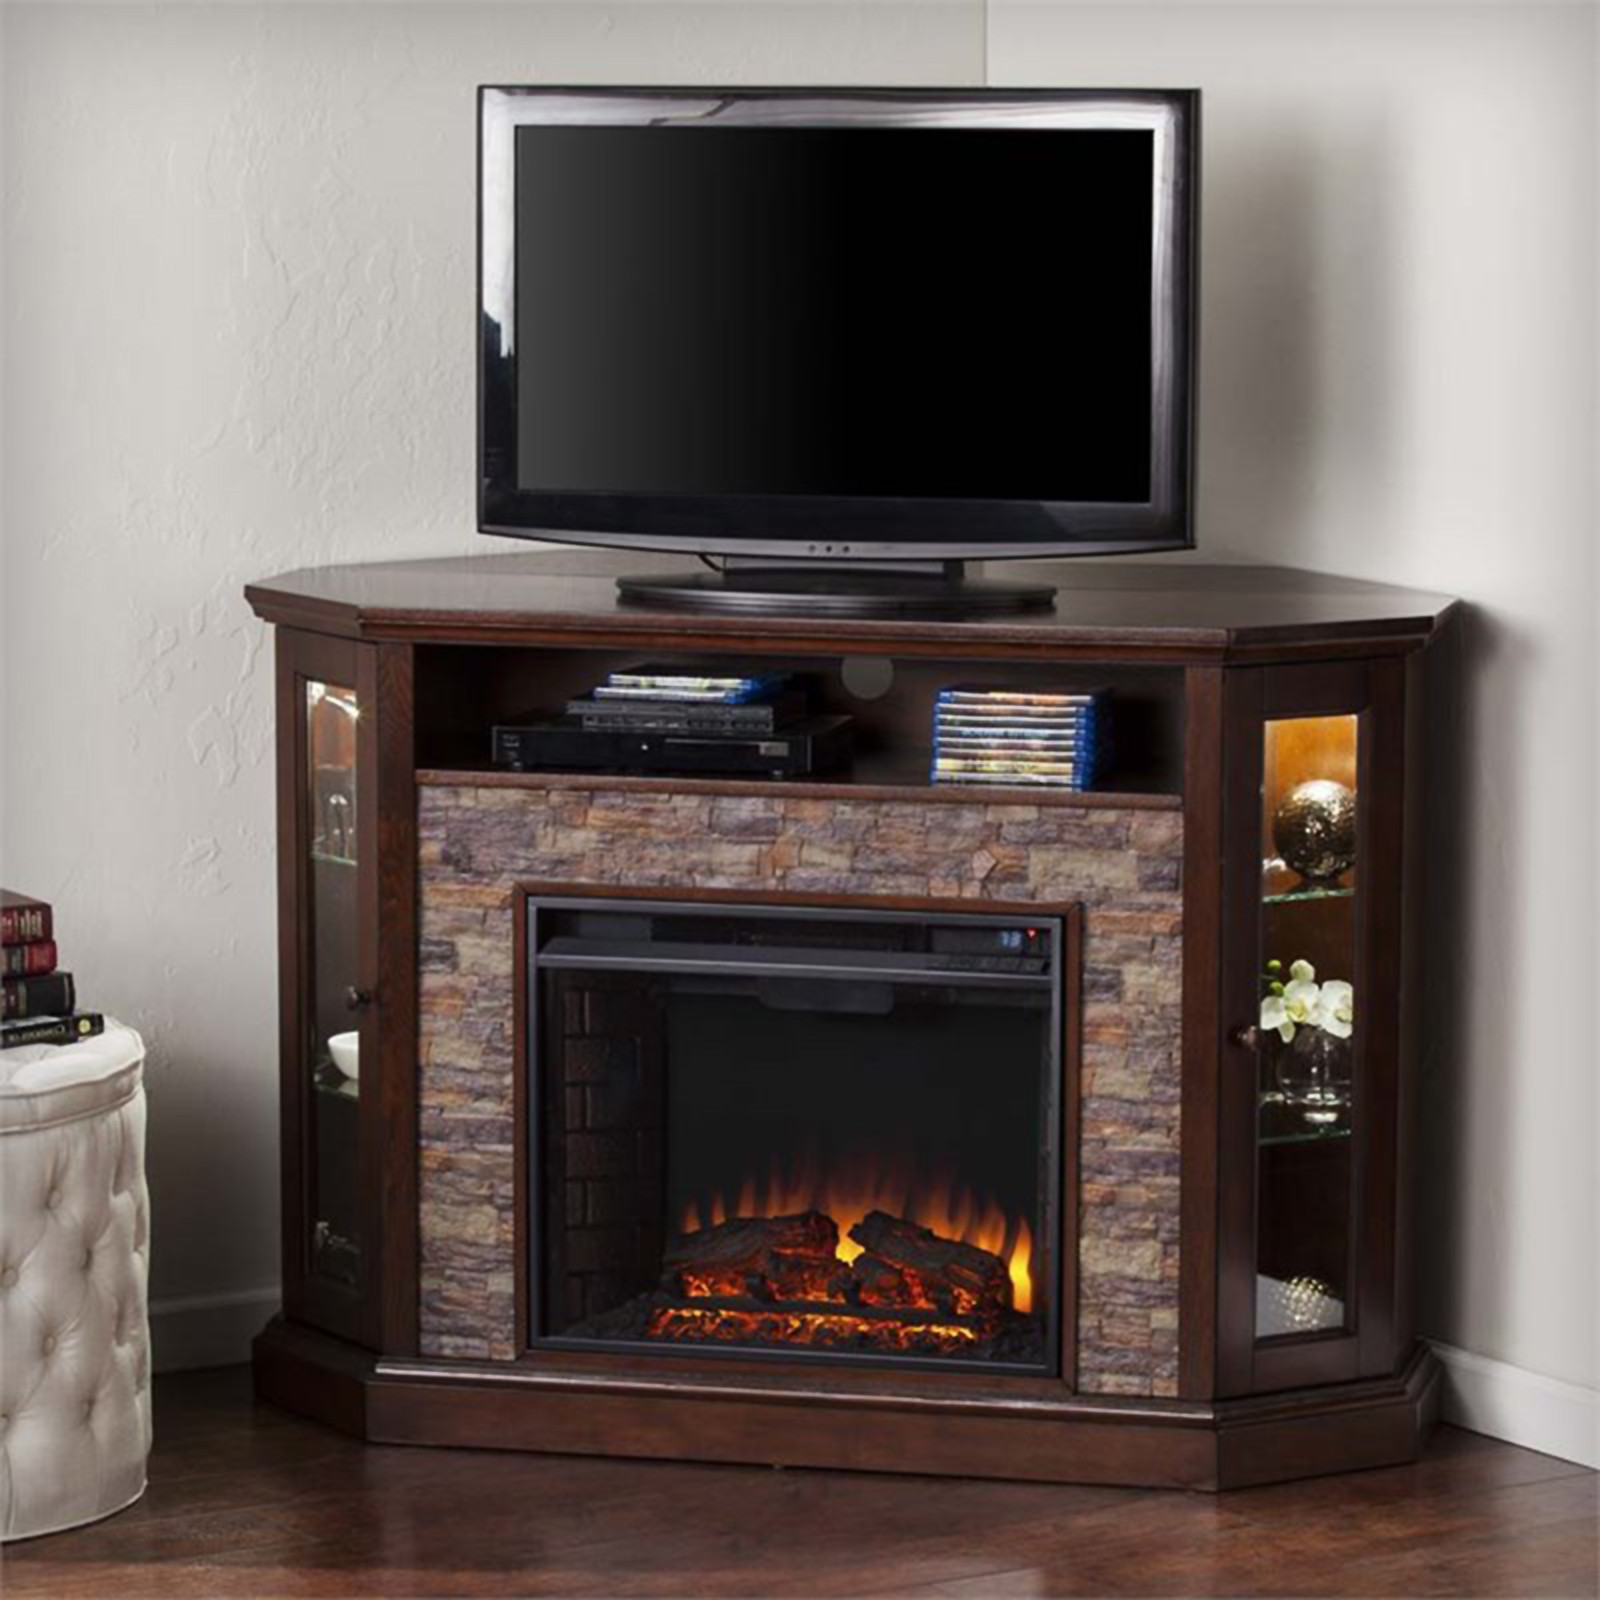 Best ideas about Kmart Fireplace Tv Stand . Save or Pin Southern Enterprise Electric Fireplace TV Stand Sears Now.